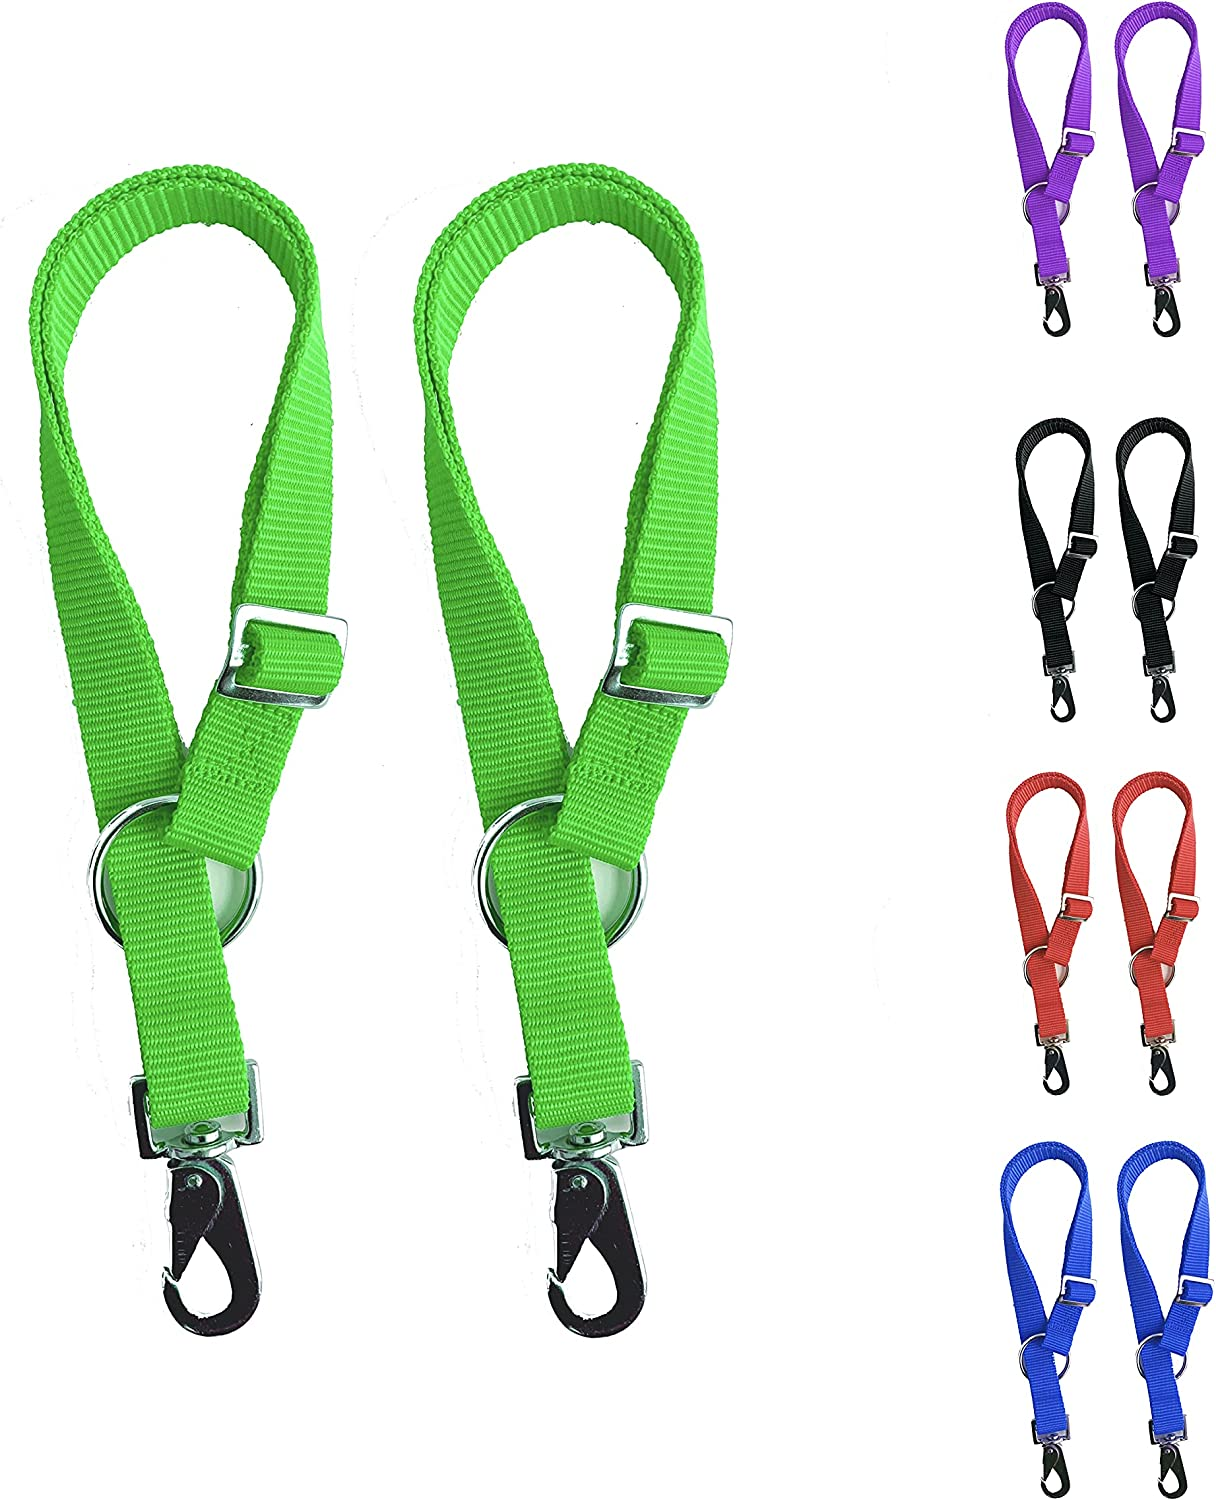 Majestic Ally Pack of Our shop OFFers the best service 2 Horse - Water Bucket Strap Adjus Hangers Max 53% OFF